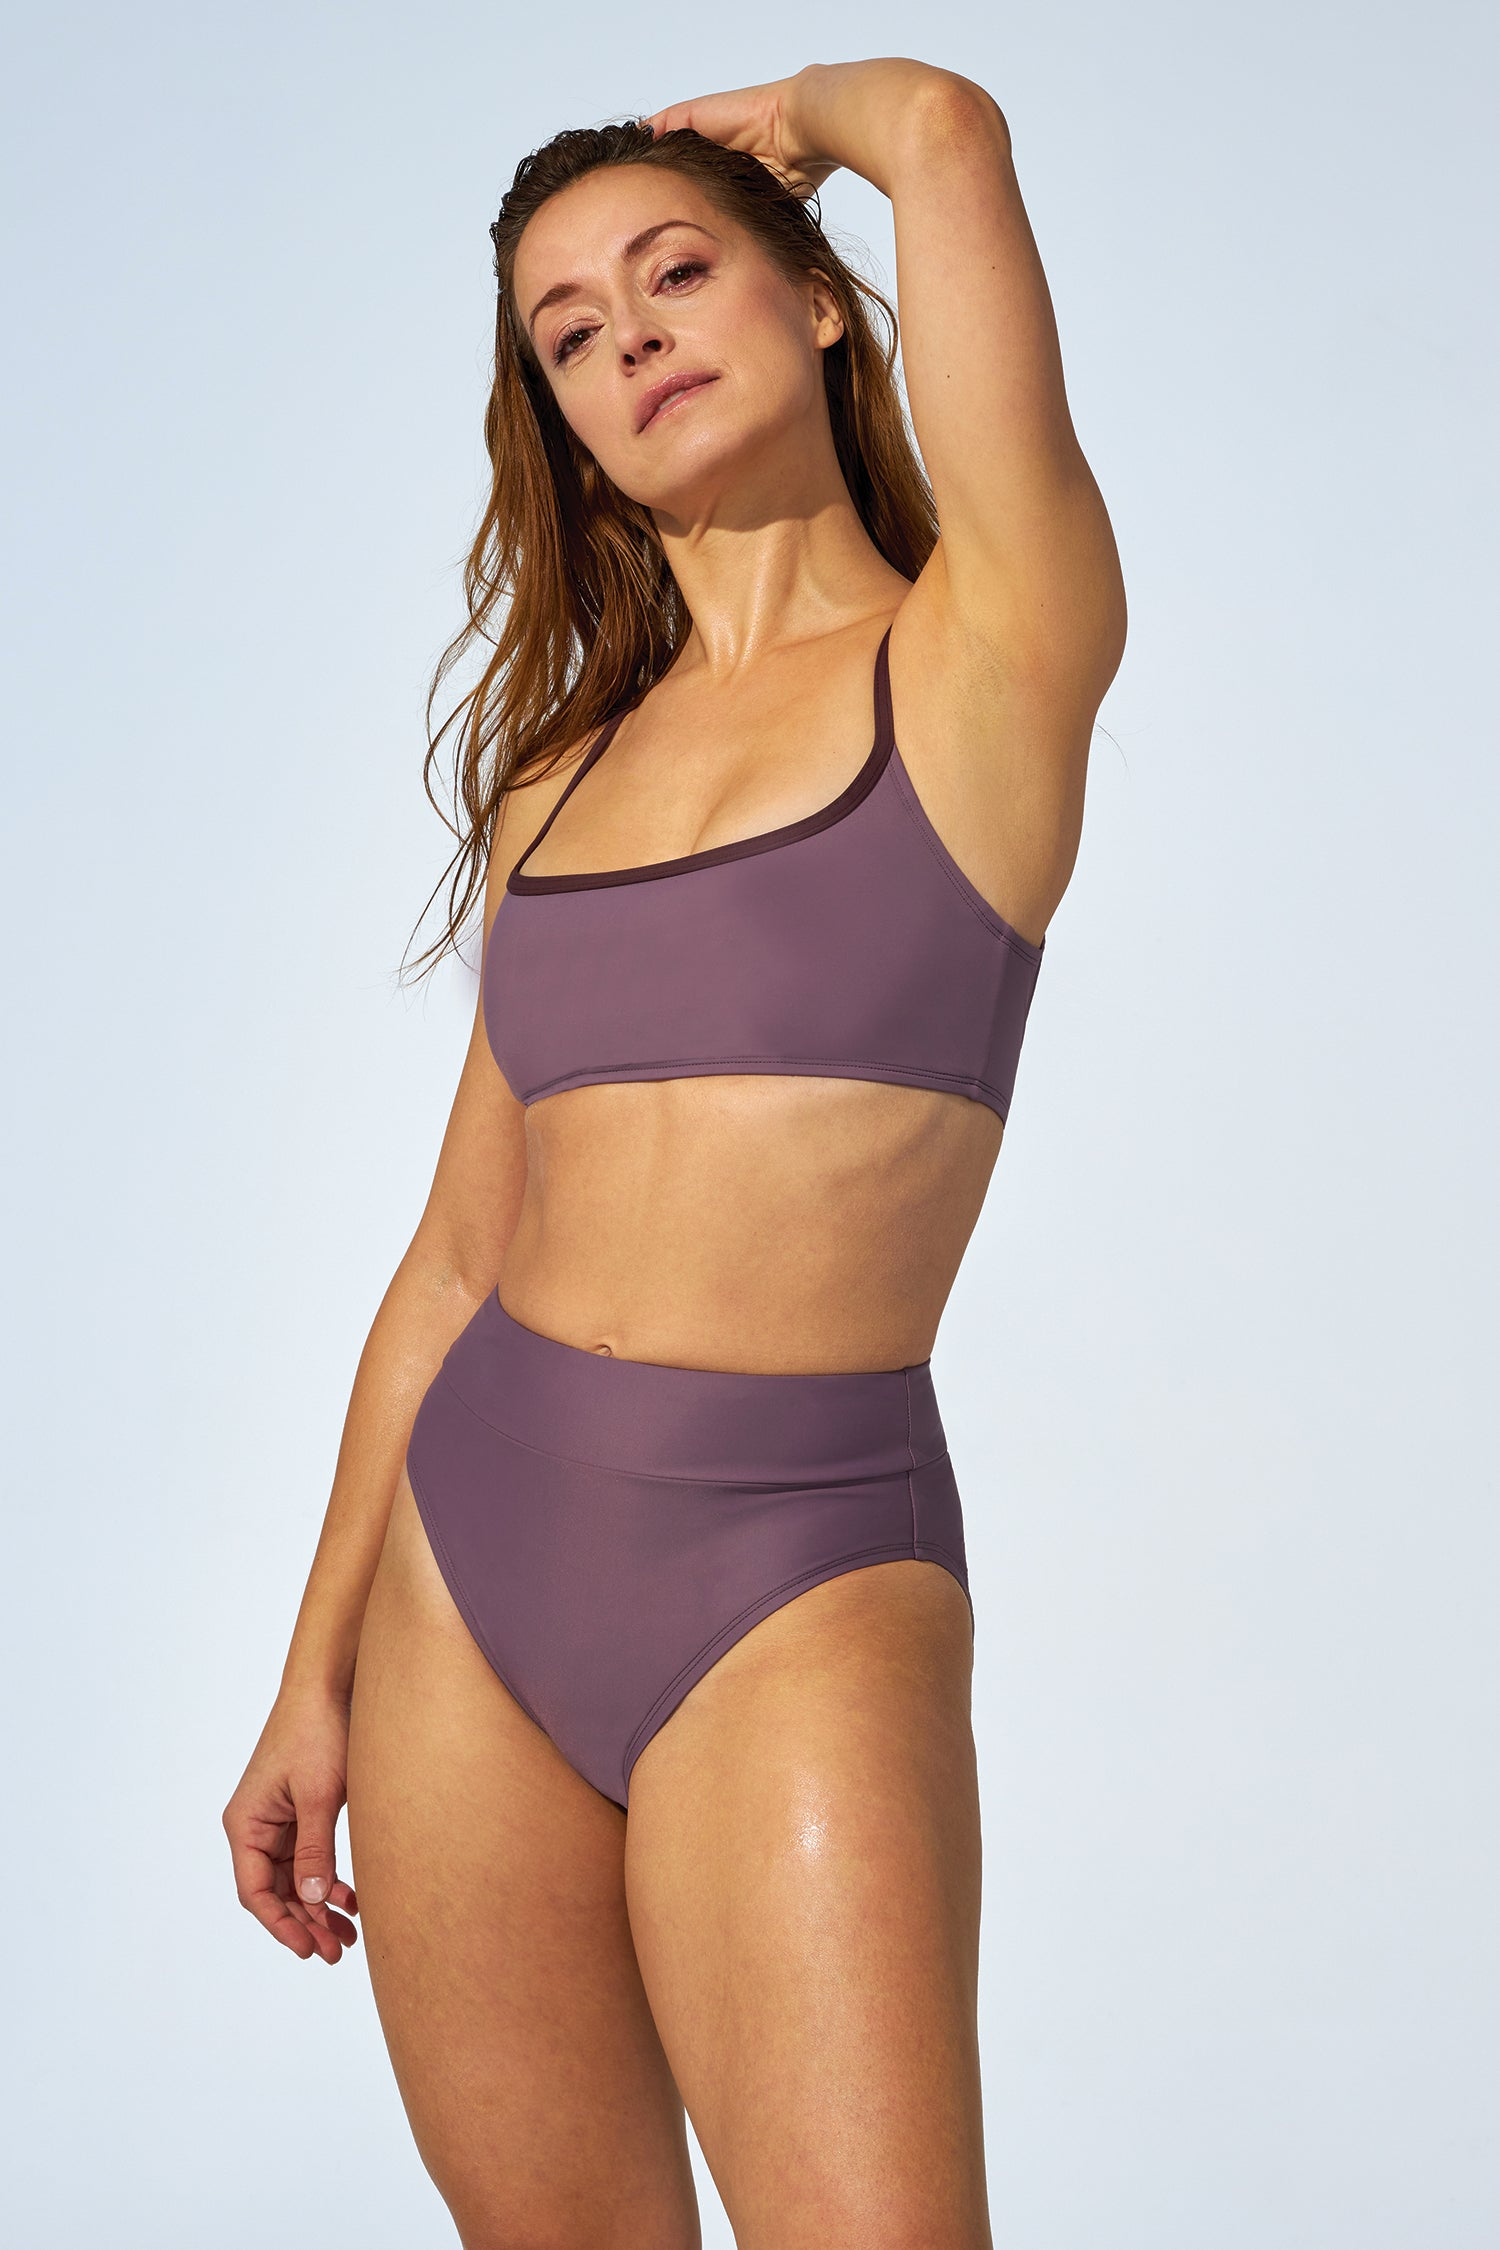 BEATRICE - Bikini top in soft purple